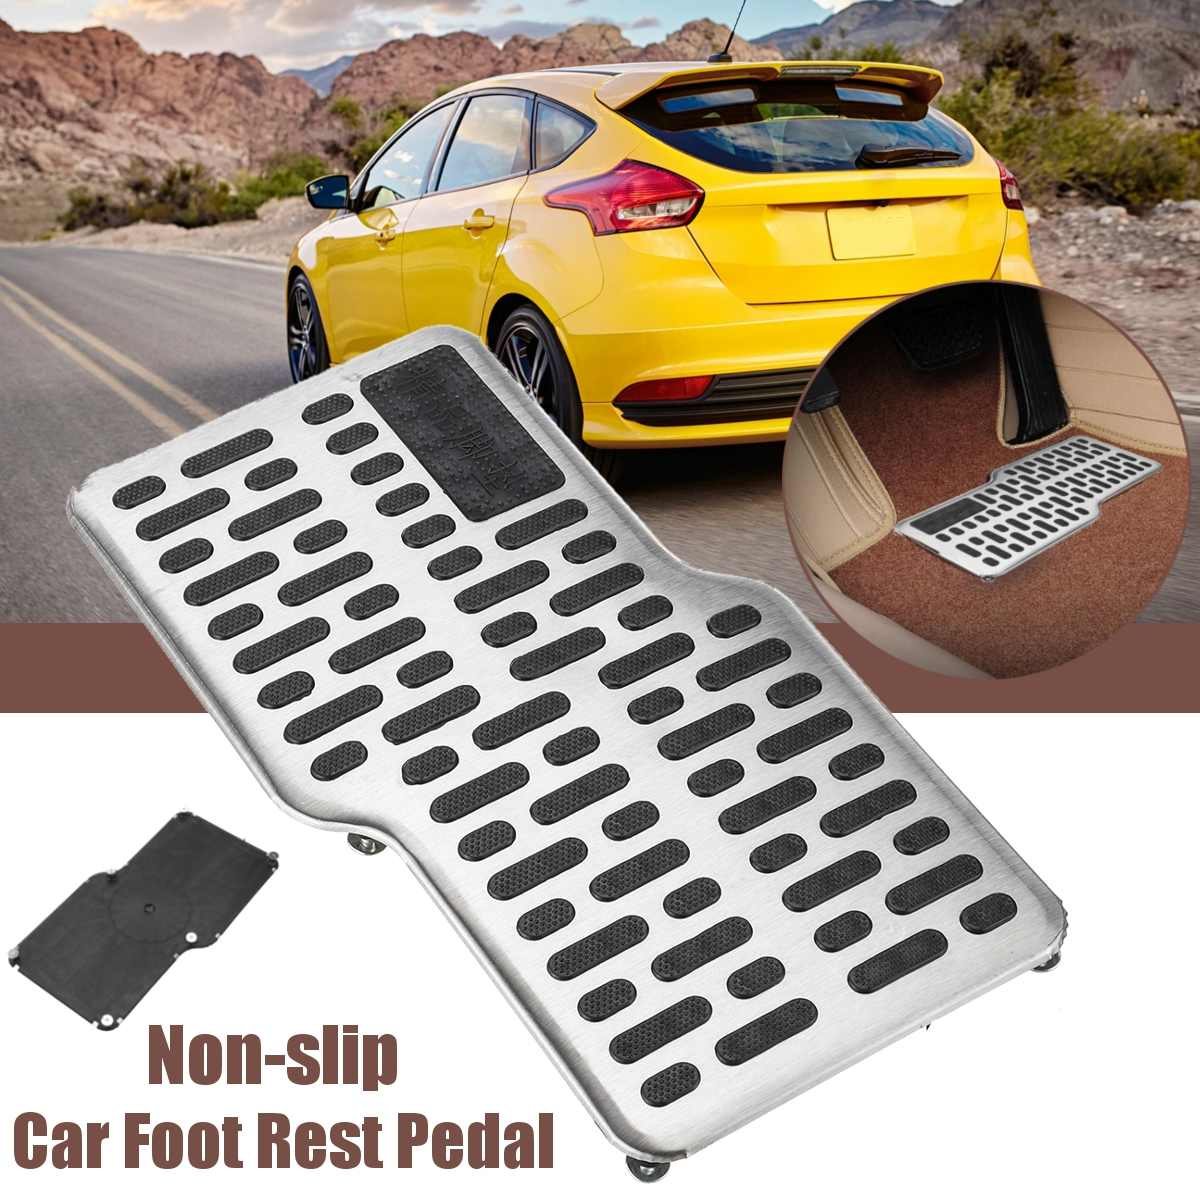 Black Beige Brown Car Foot Rest Pedal Plate Floor Carpet Mats Non-slip Stainless Heel Pad  For Car Truck Suv